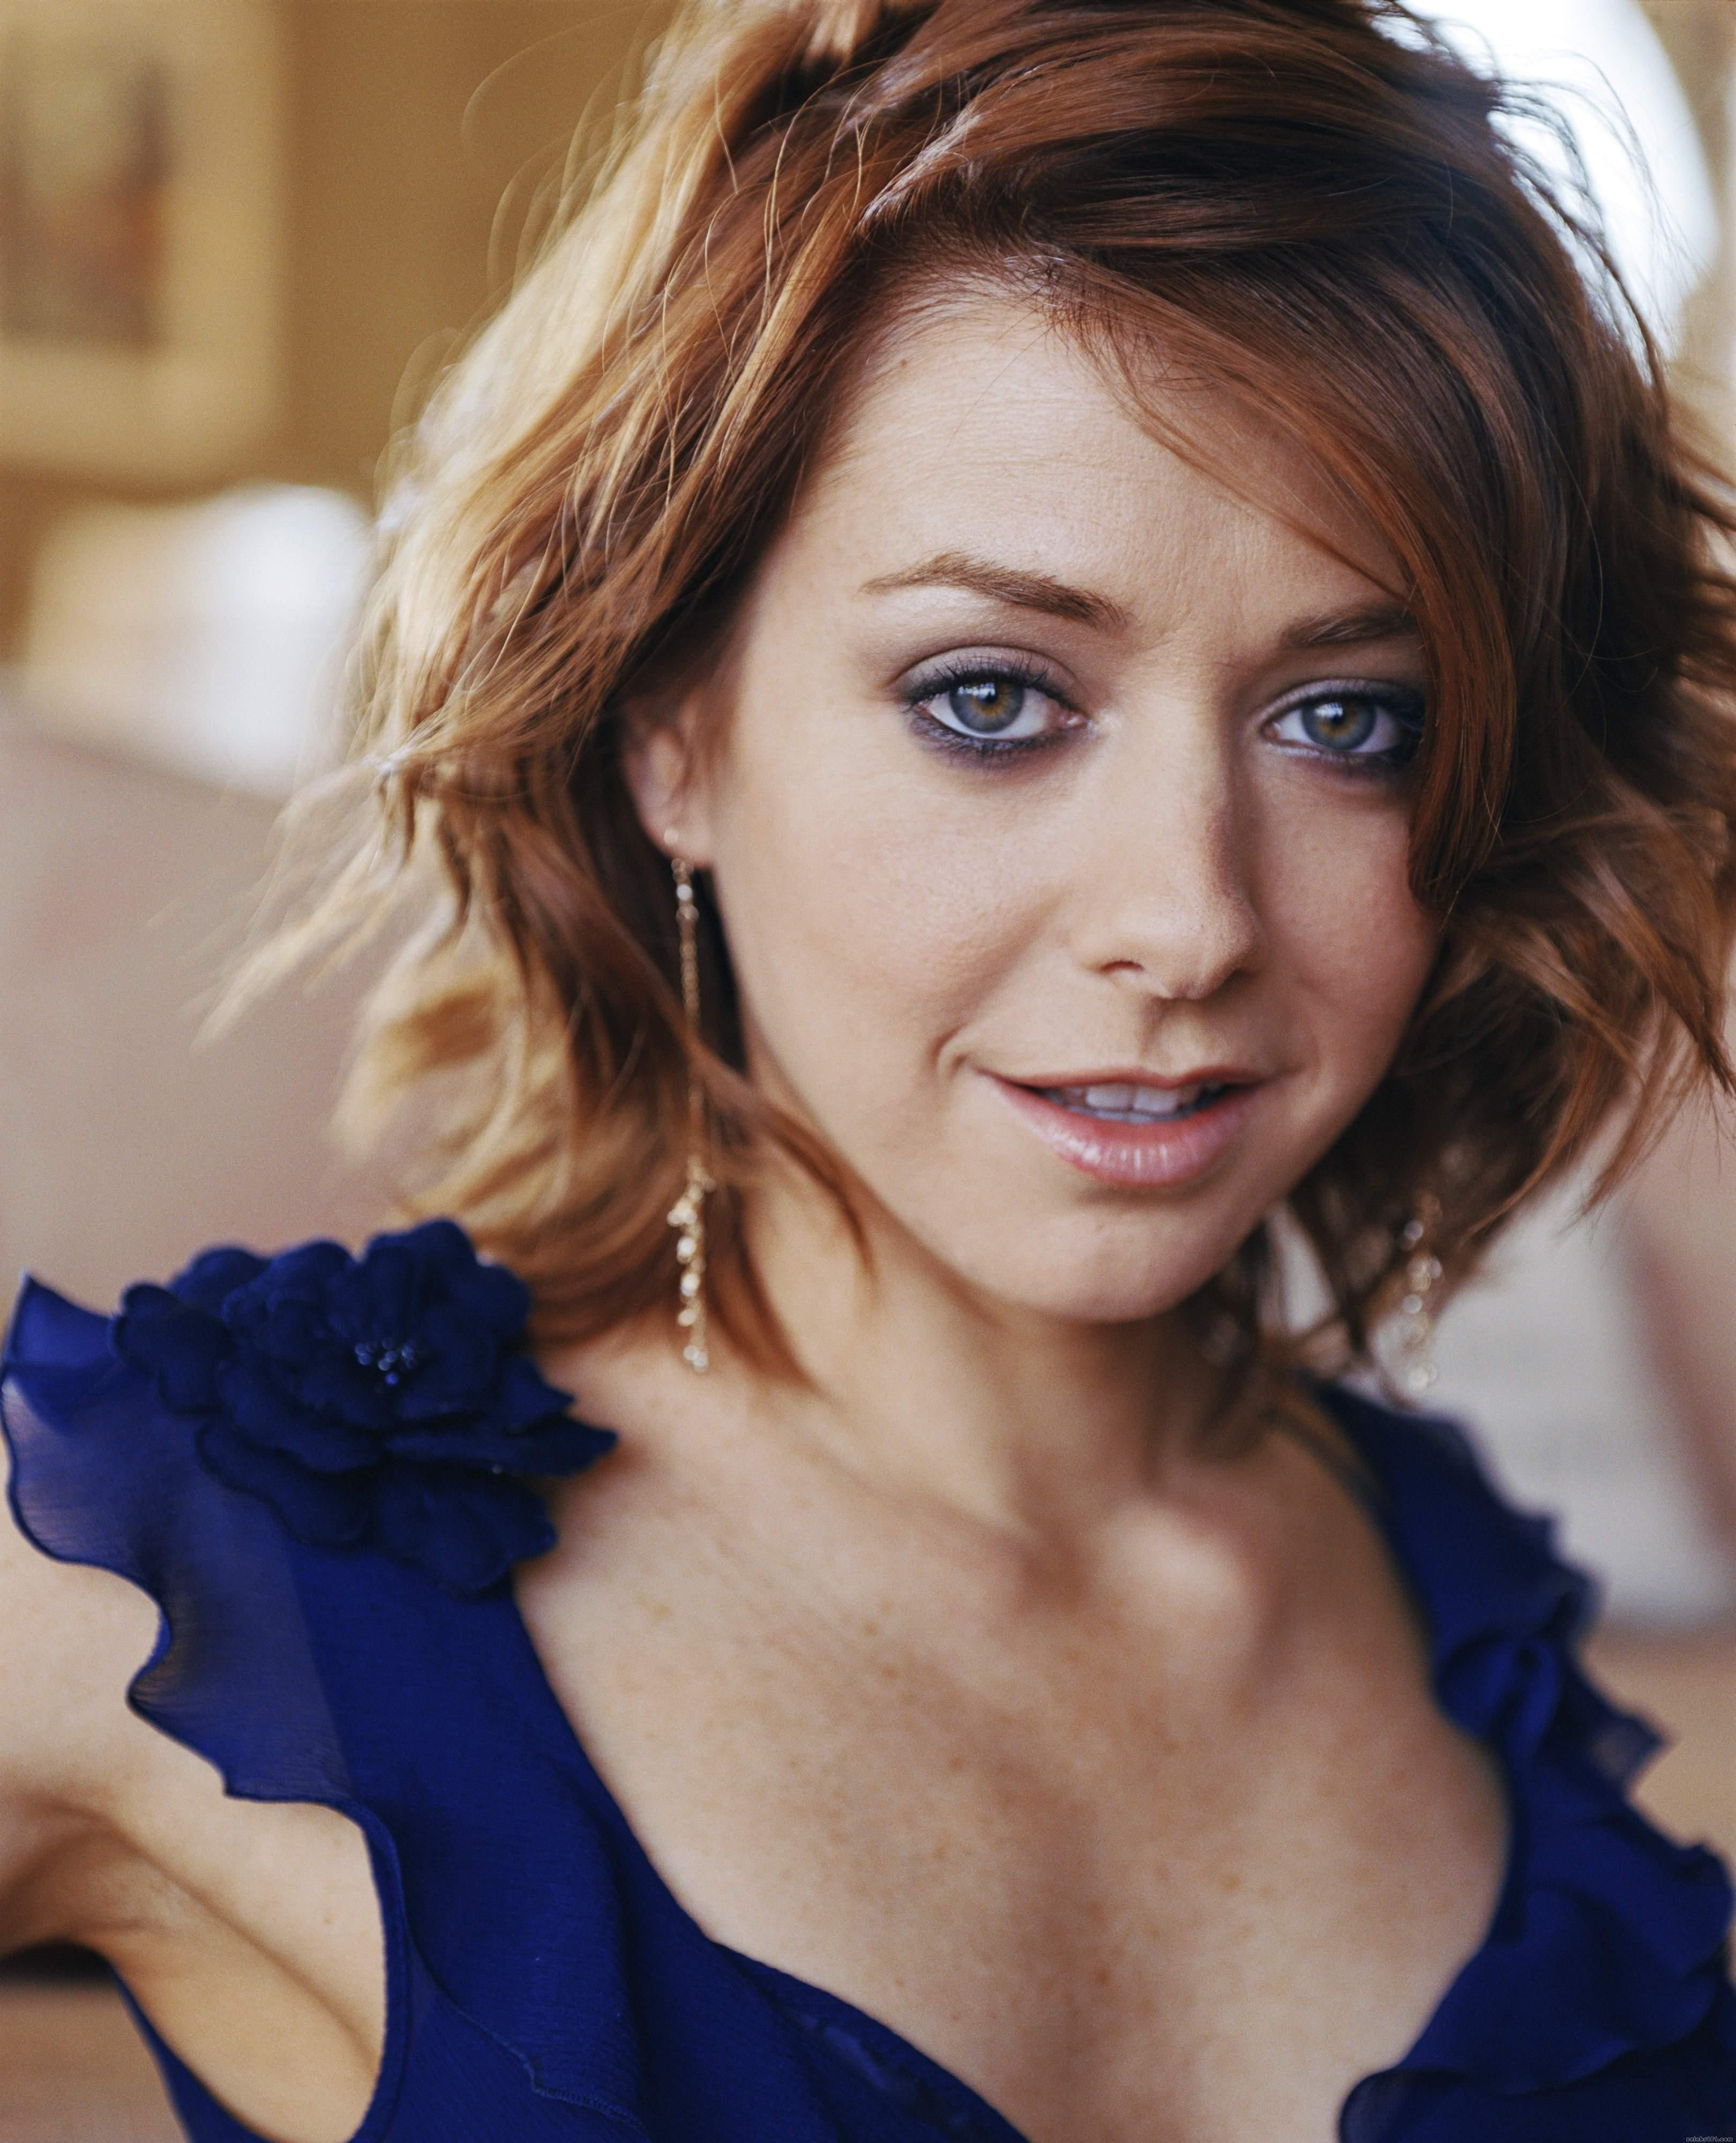 Cleavage Alyson Hannigan nudes (99 foto and video), Topless, Fappening, Feet, cameltoe 2006